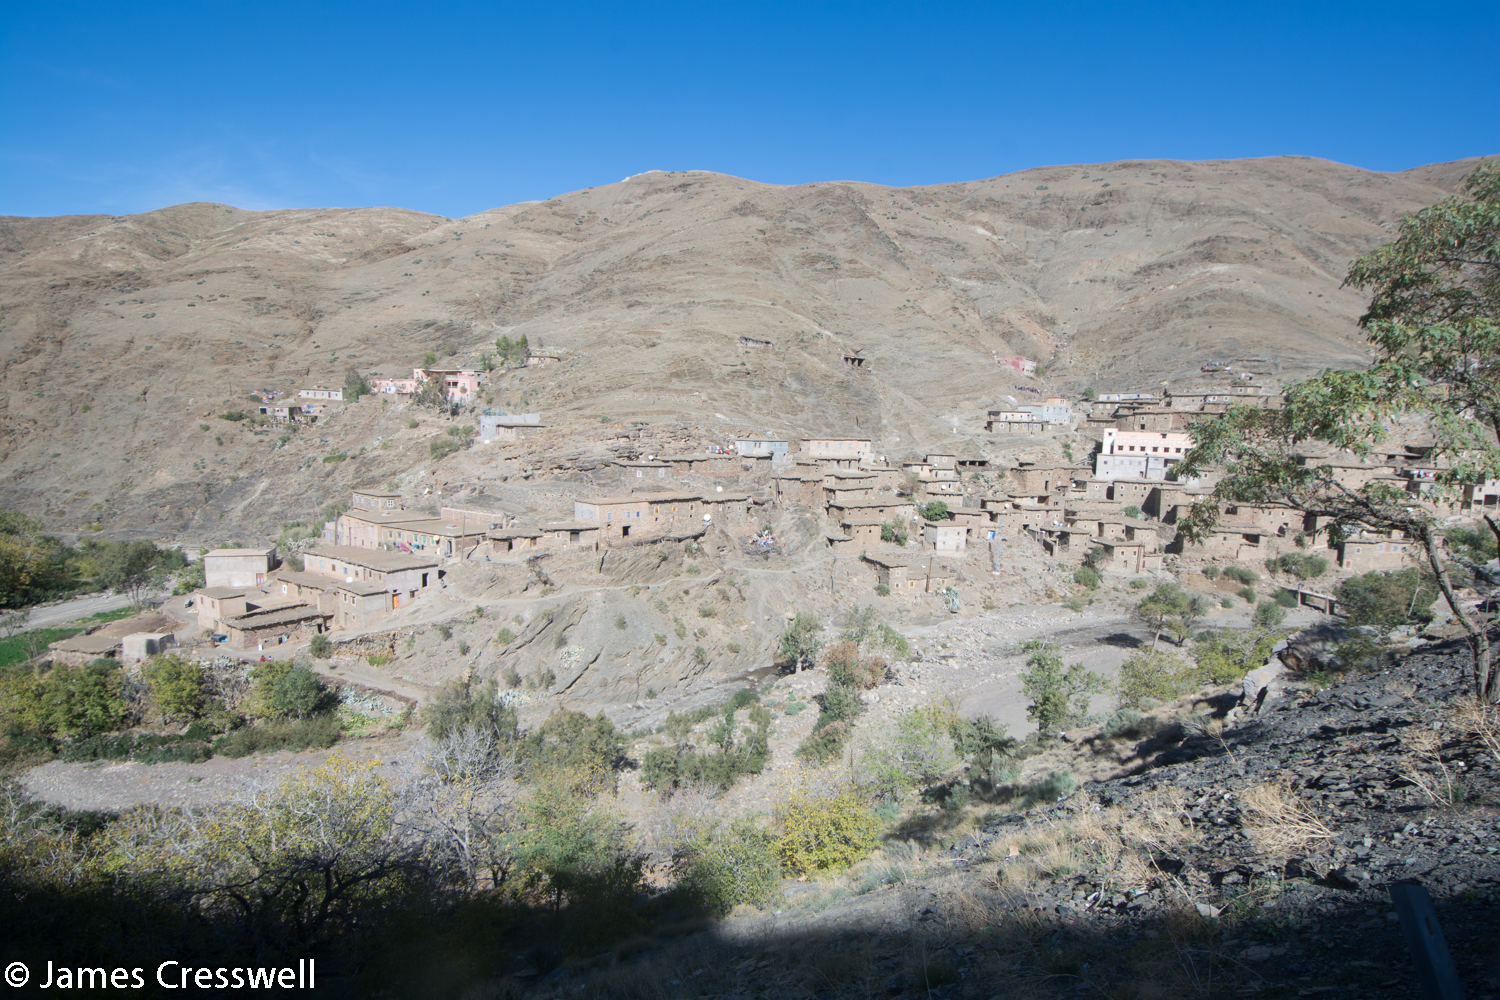 A village in the High Atlas mountains